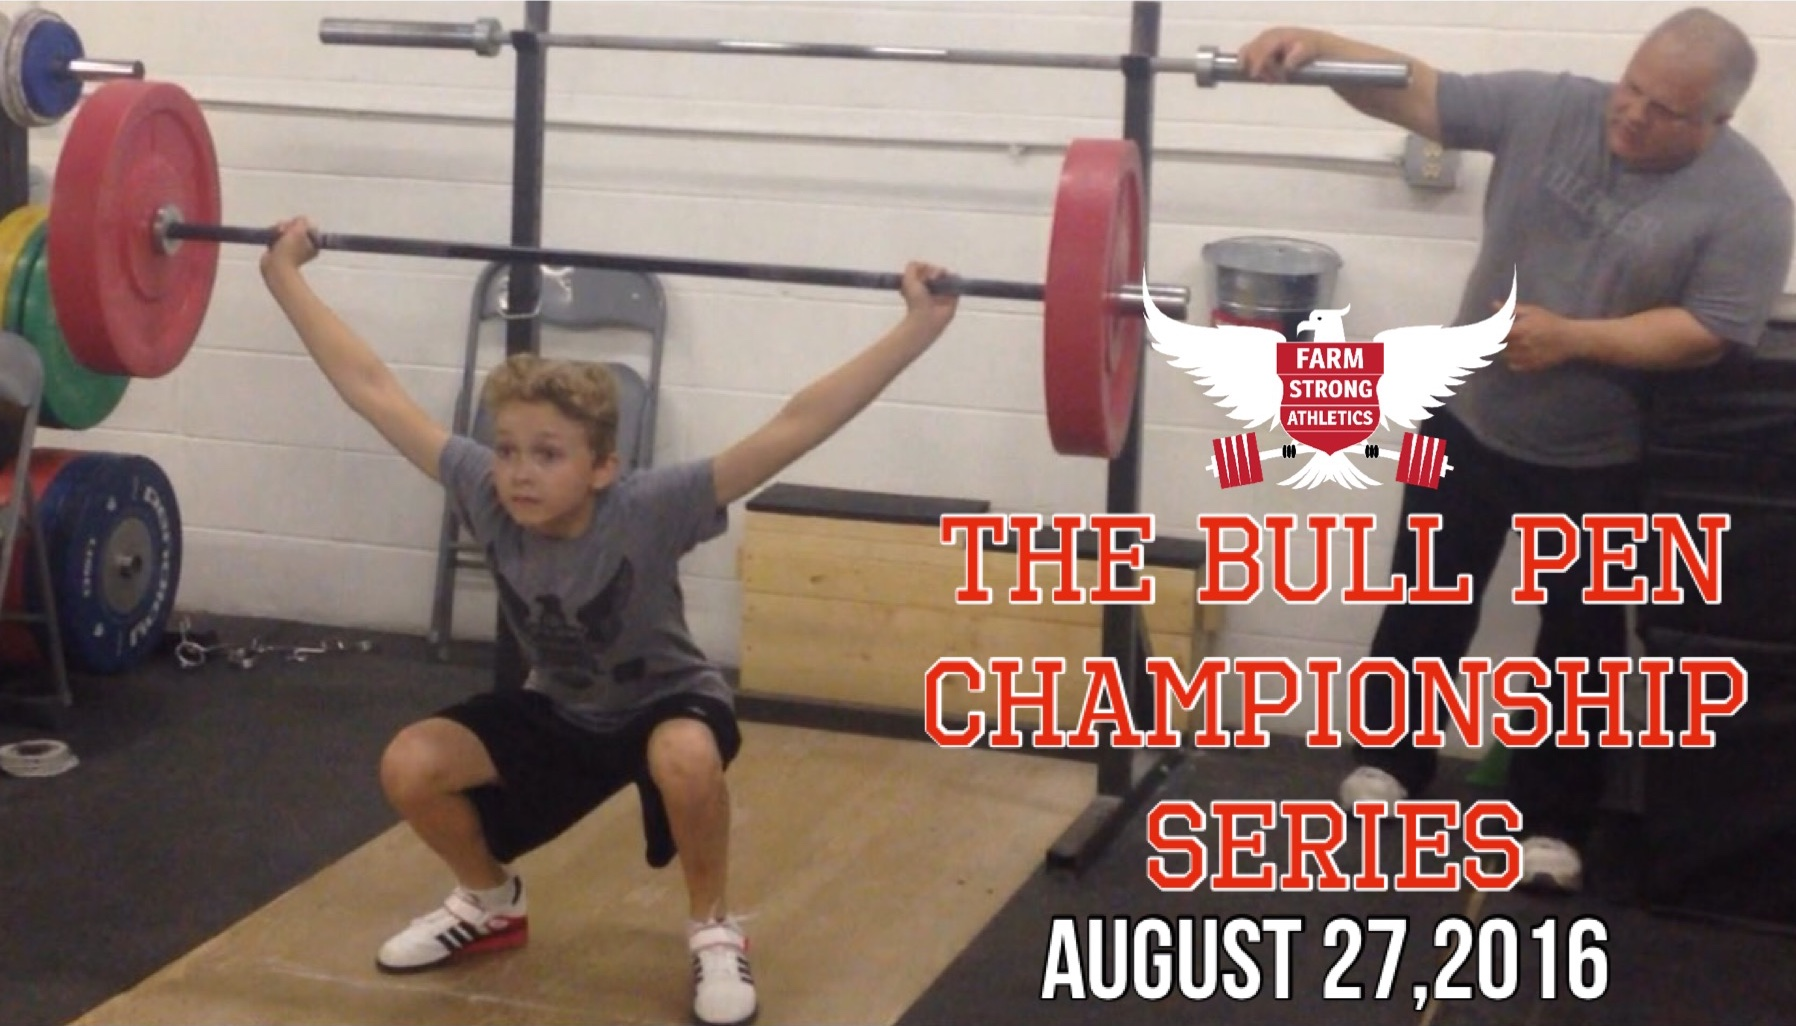 The Bull Pen Championship Series